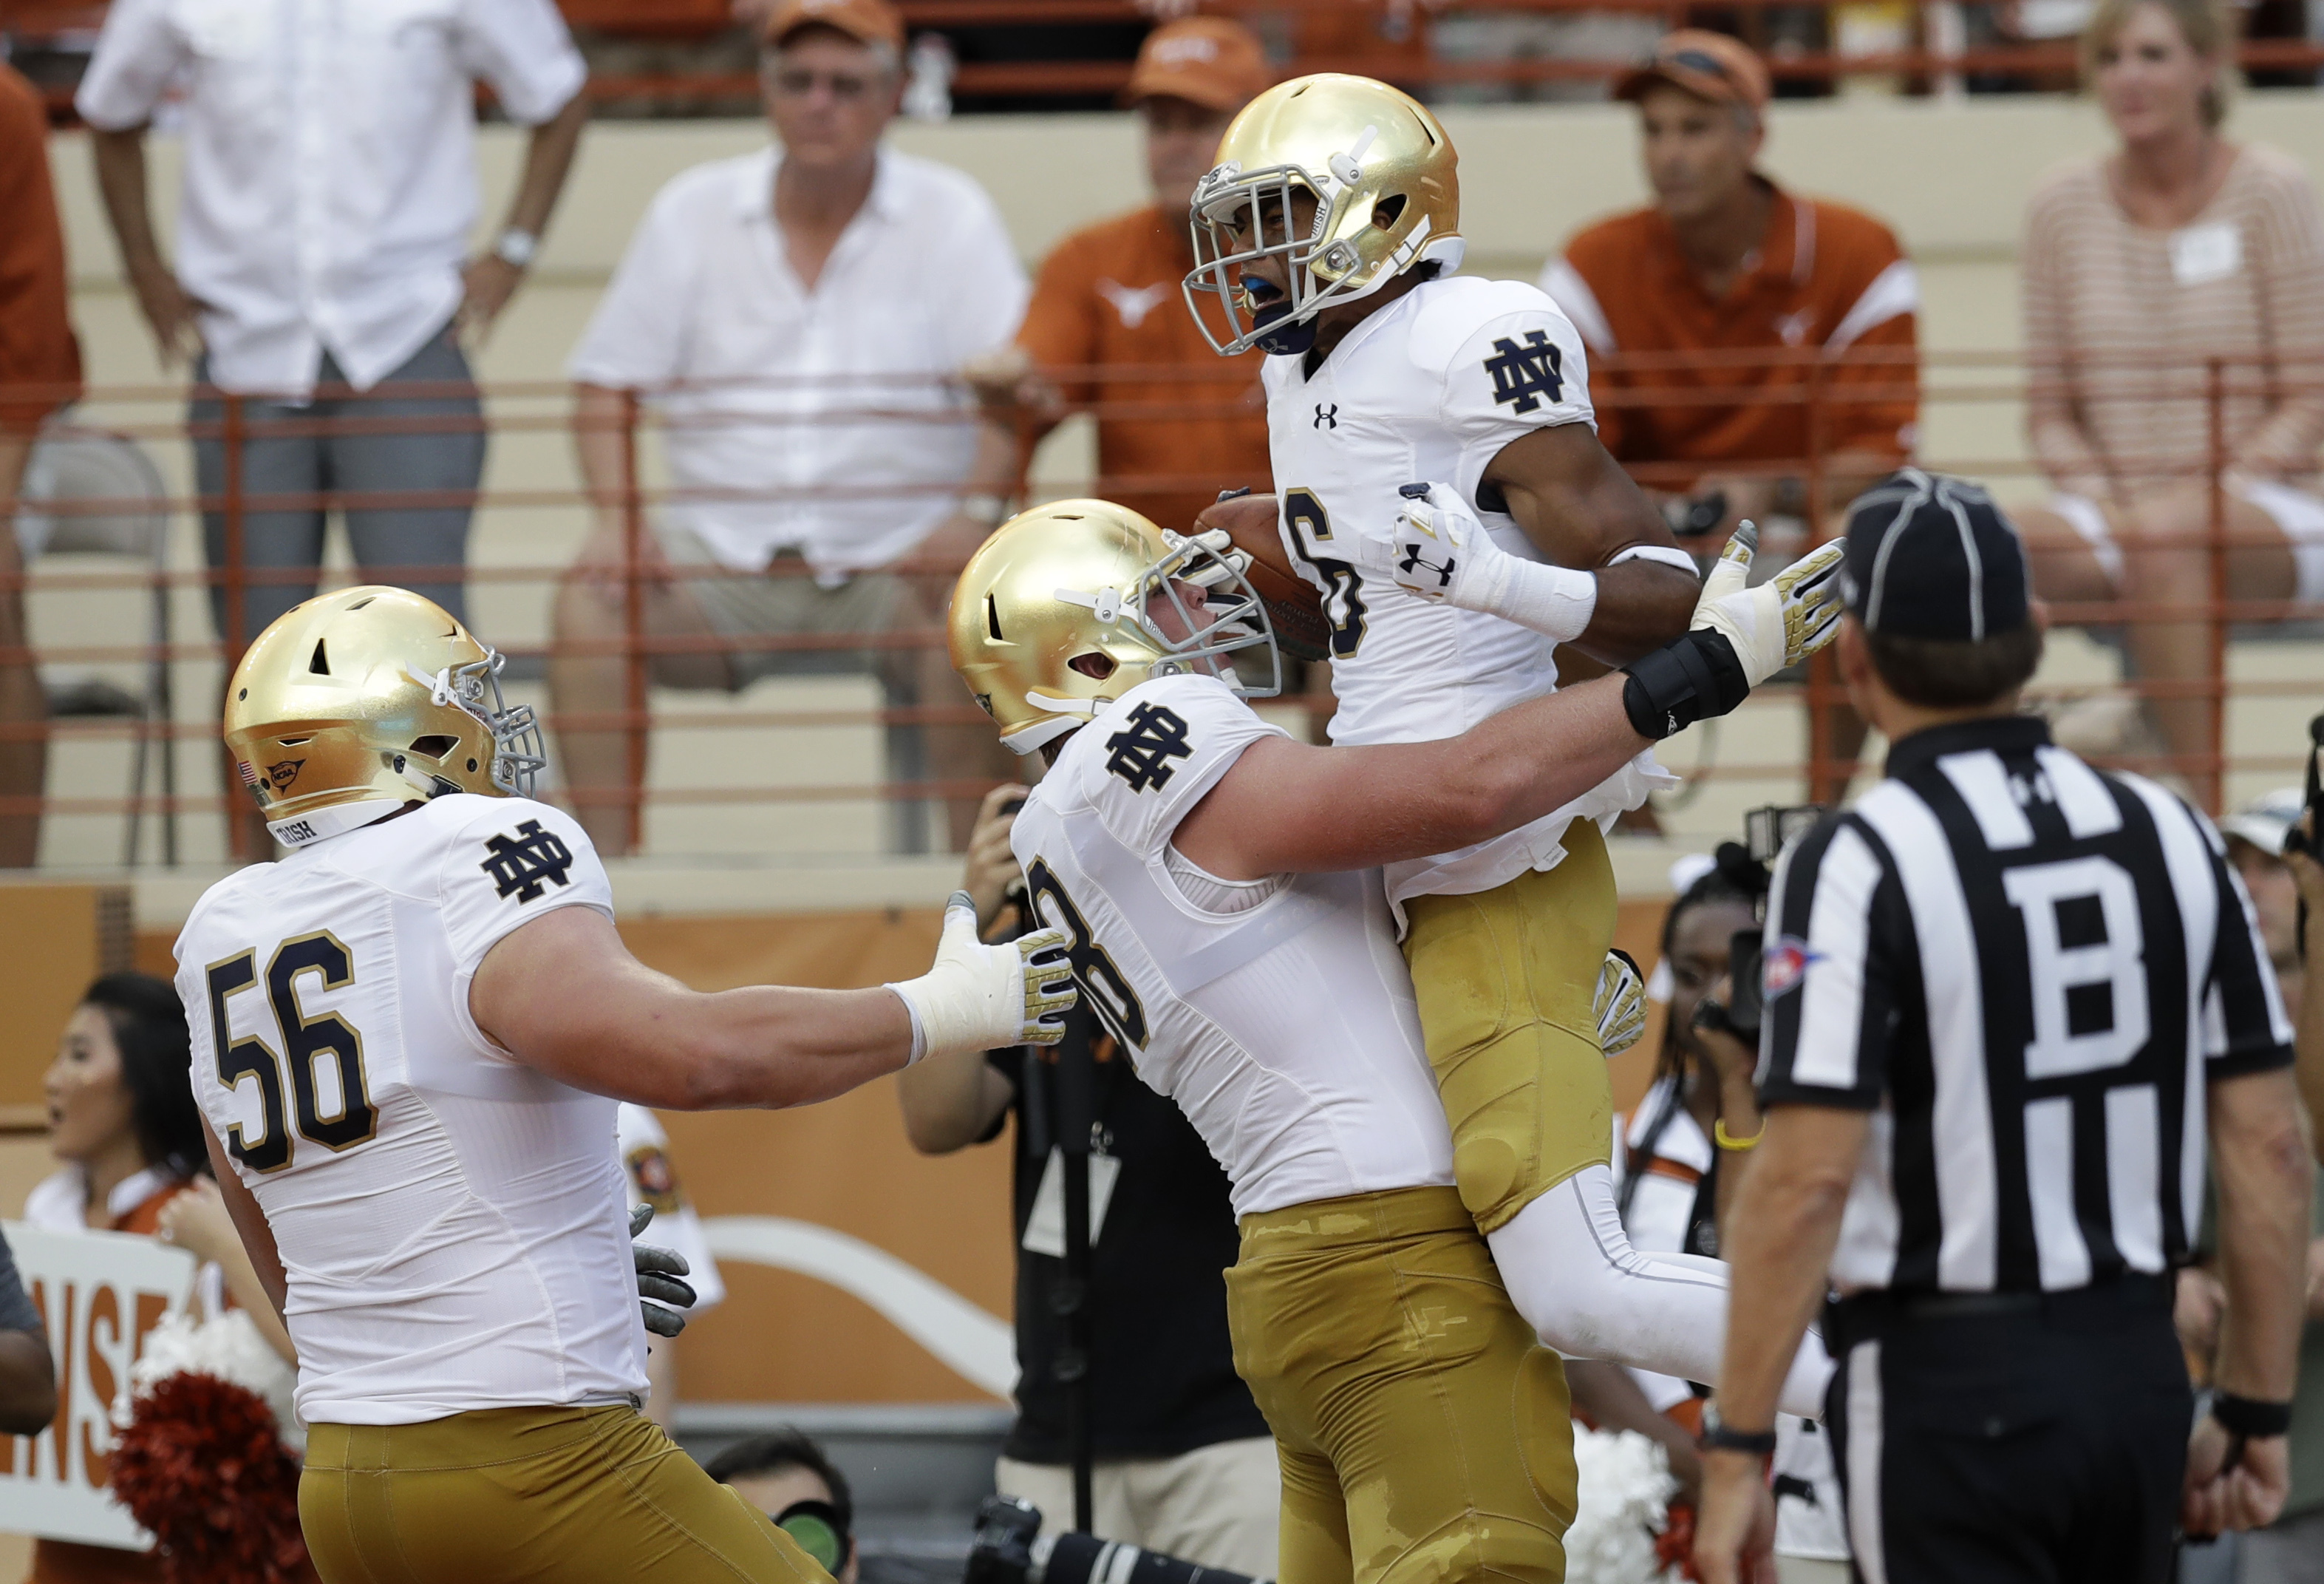 In this Sept. 4, 2016 file photo, Notre Dame wide receiver Equanimeous St. Brown, right, celebrates with teammates after catching a 19-yard touchdown pass during during an NCAA college football game in Austin, Texas. The wide receiver is living up to his